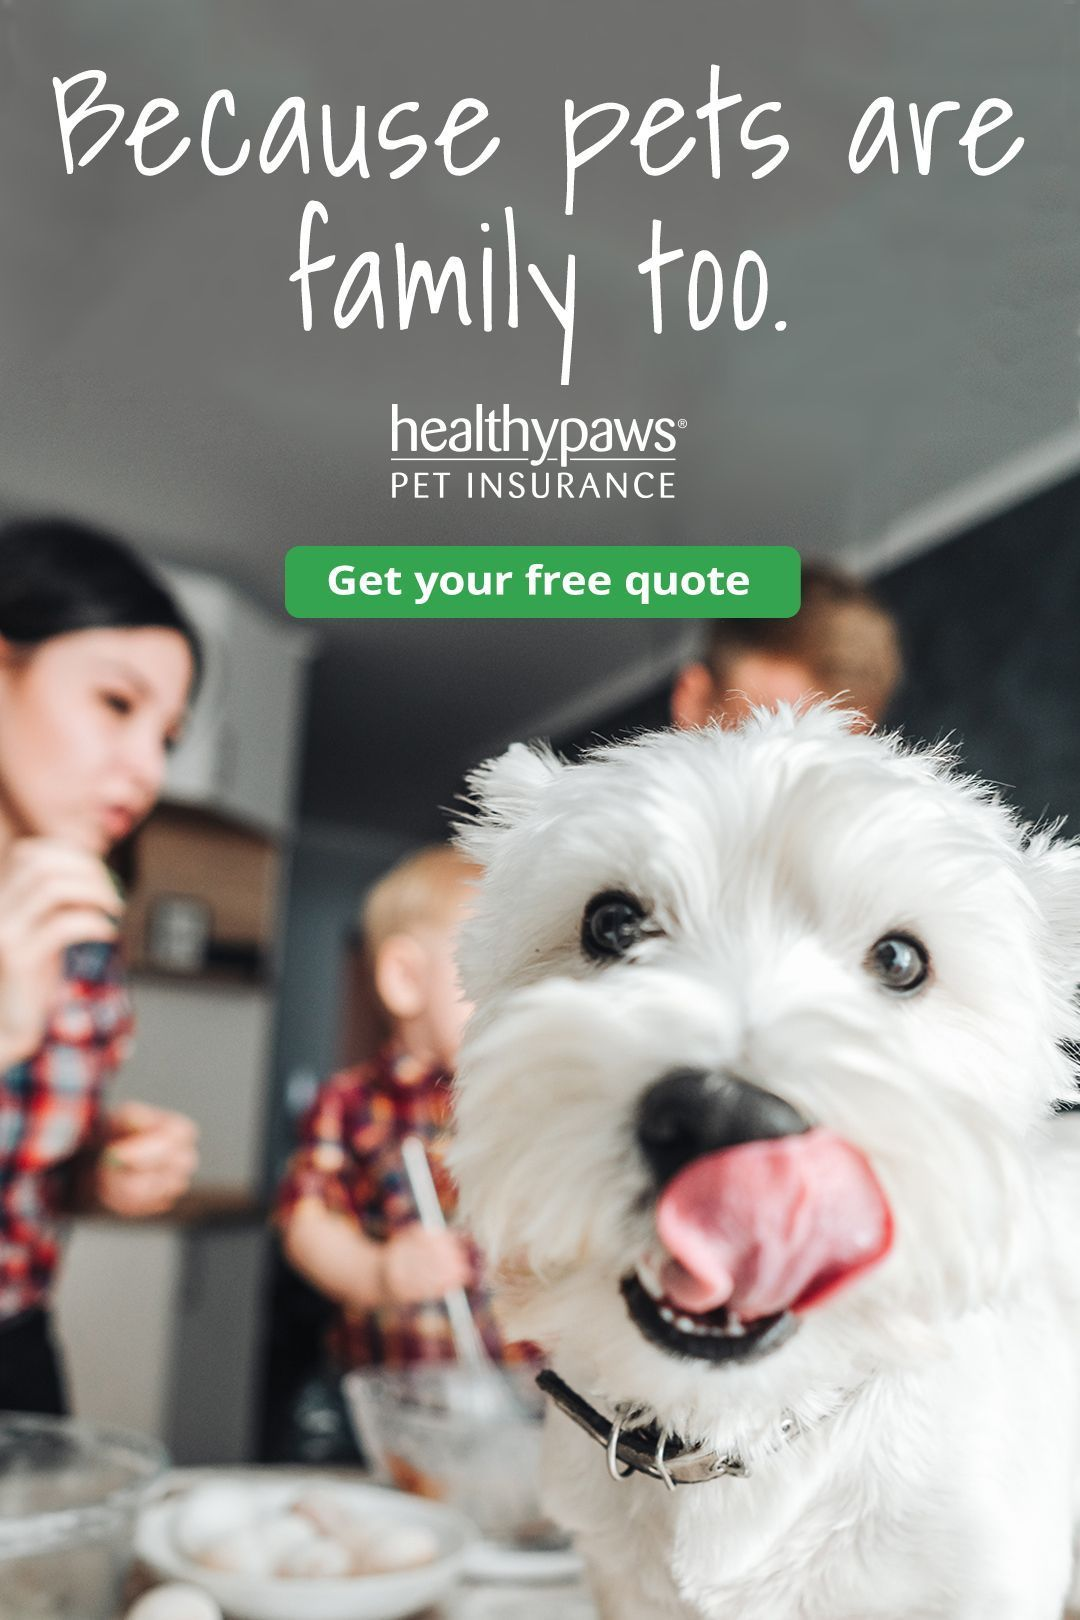 With Healthy Paws Pet Insurance & Foundation, you can give